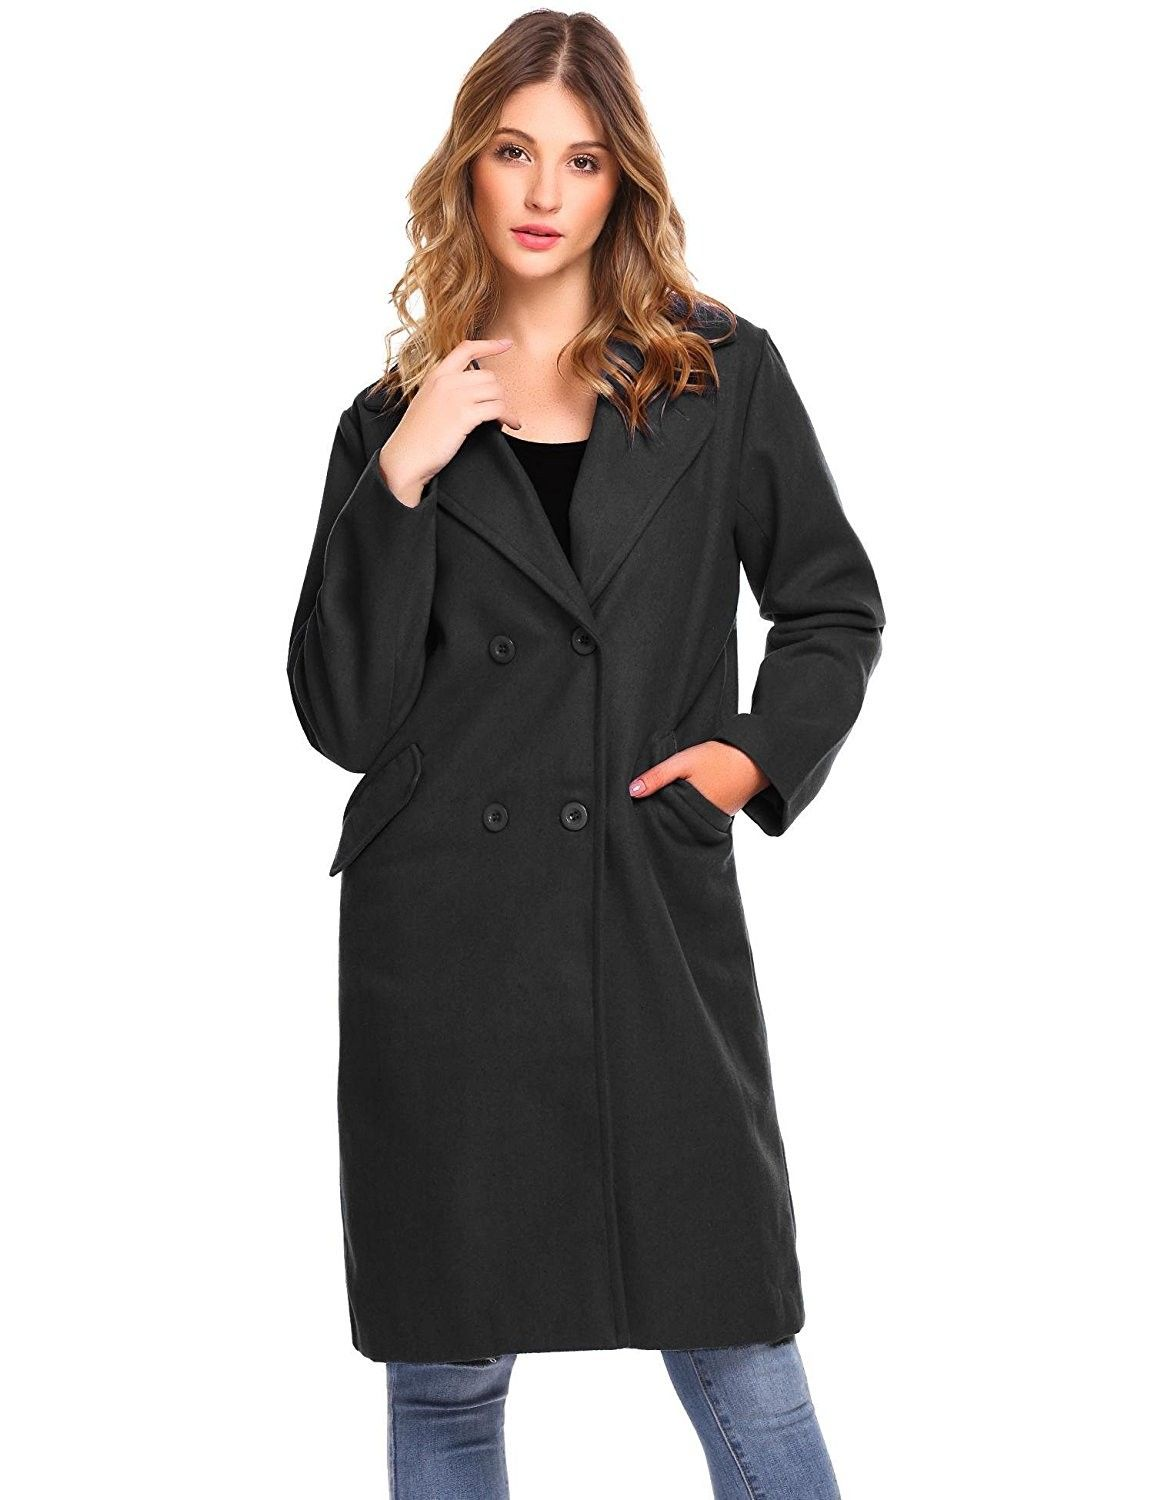 f386df047f Women's Clothing, Coats, Jackets & Vests, Wool & Pea Coats,Womens Warm  Lapel Double-Breasted Solid Casual Loose Fit Long Wool Blend Coat - Black  ...